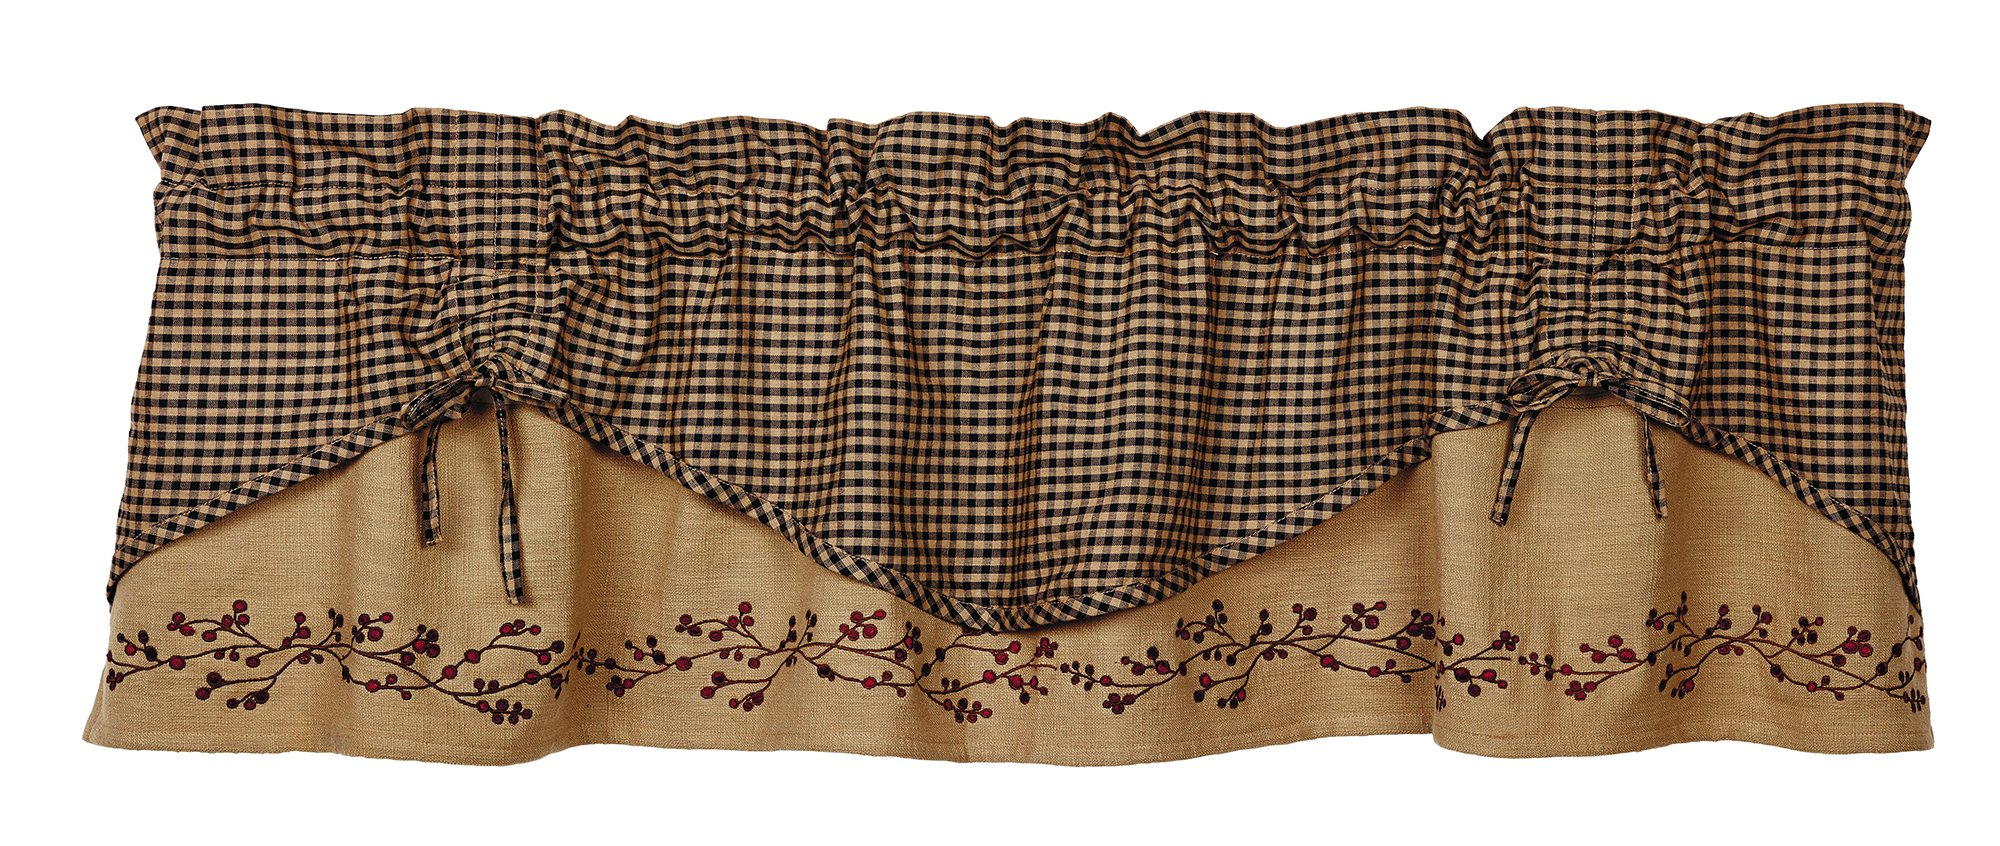 Berry Vine Valance, Scalloped, 60'' x 16'', Country Curtain, Primitive Curtain, Black check